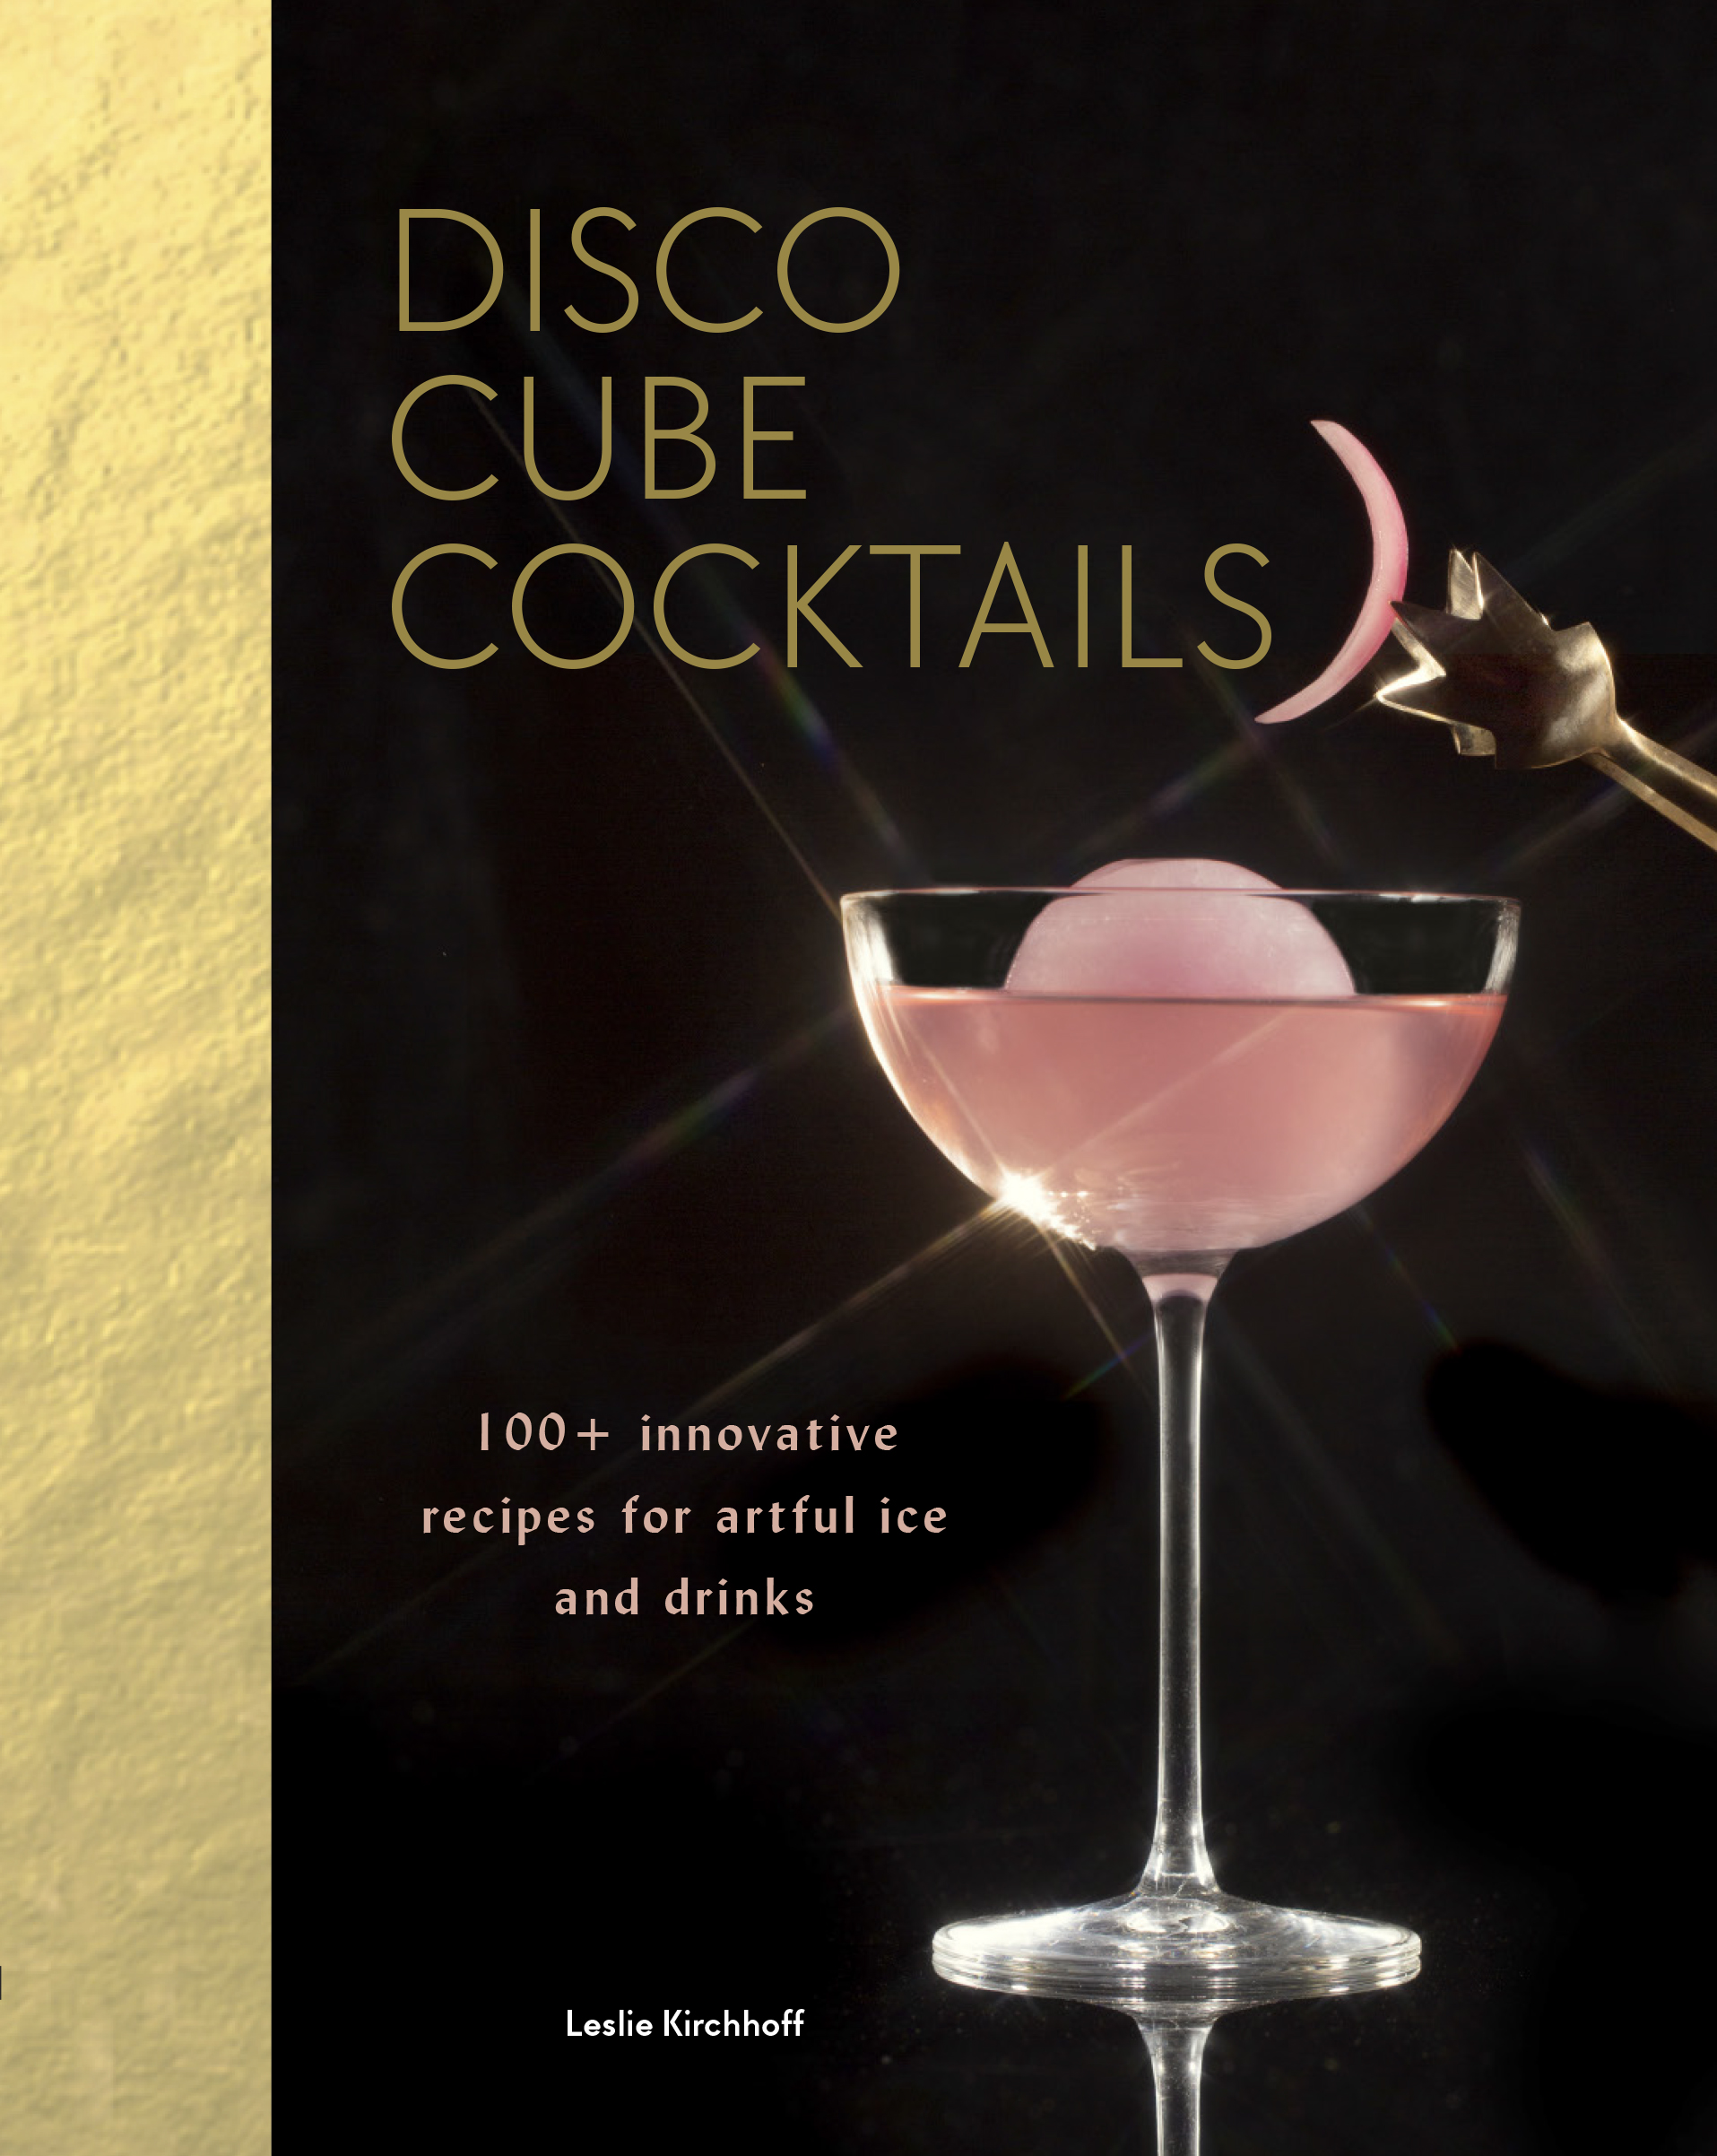 Disco Cubes: Ice is a big part of the mix in making great cocktails